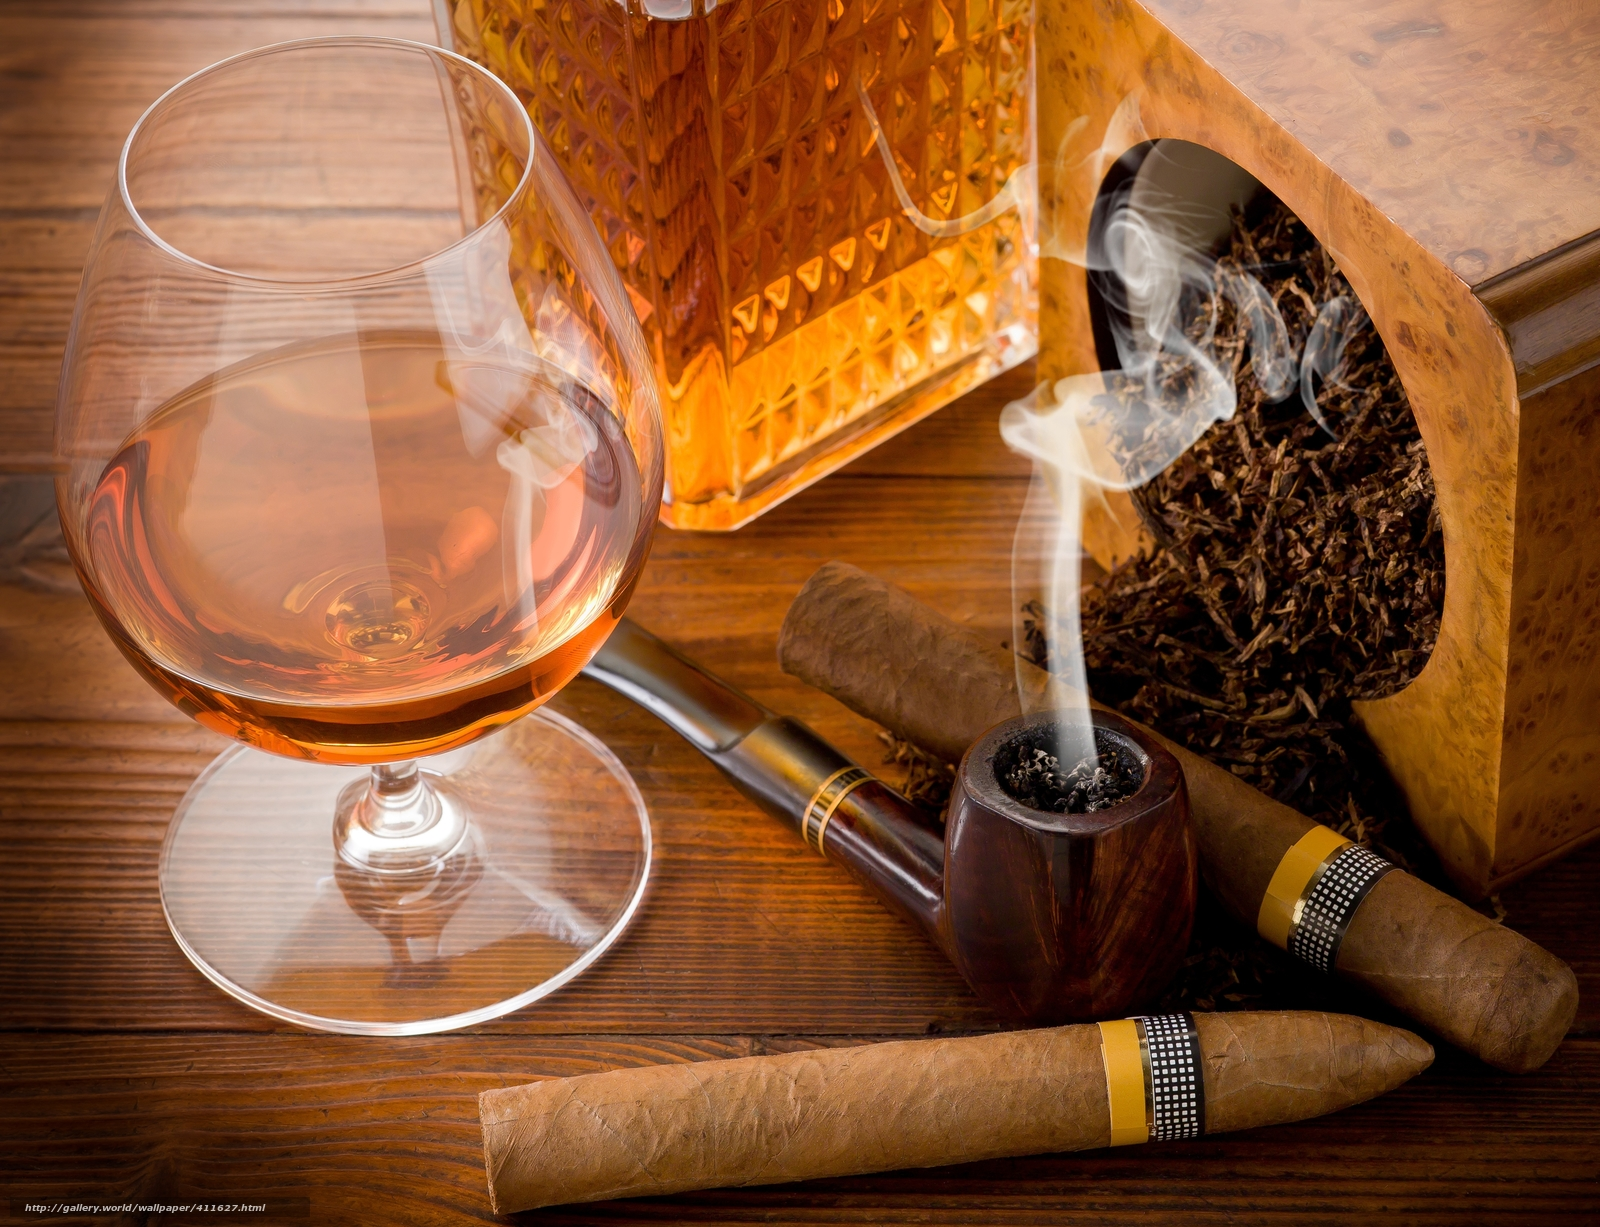 Download wallpaper table,  goblet,  Brandy,  tobacco free desktop wallpaper in the resolution 5500x4218 — picture №411627